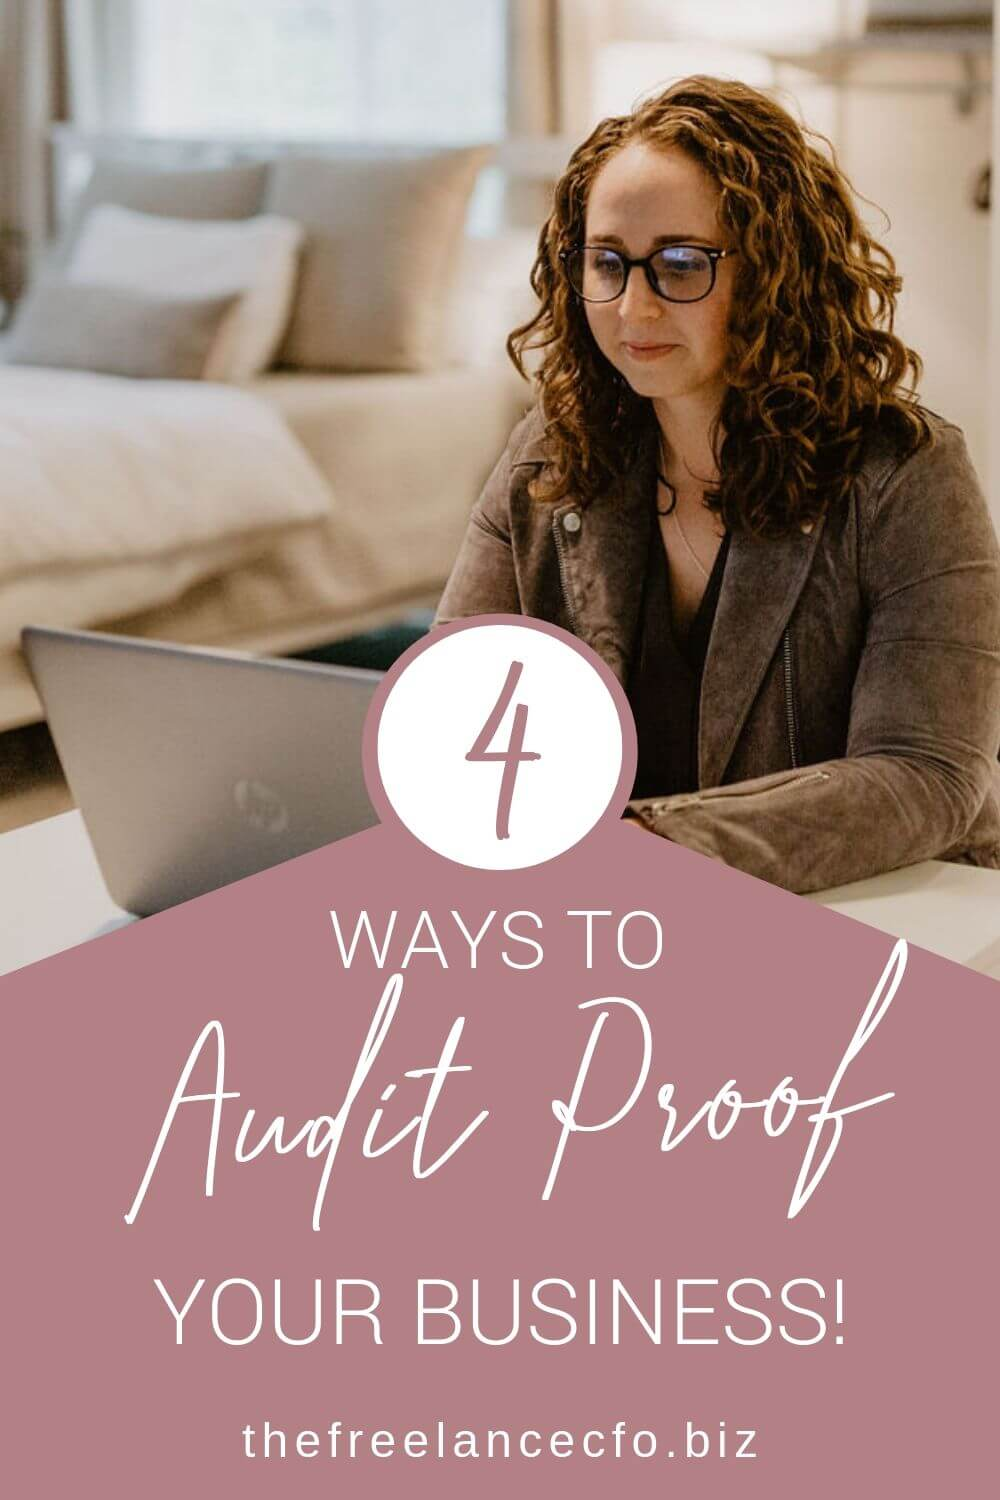 The reality is, even if you own a small business that doesn't make a full time income, you are subject to auditing. But If you implement these four simple strategies, you can effectively audit proof your business!